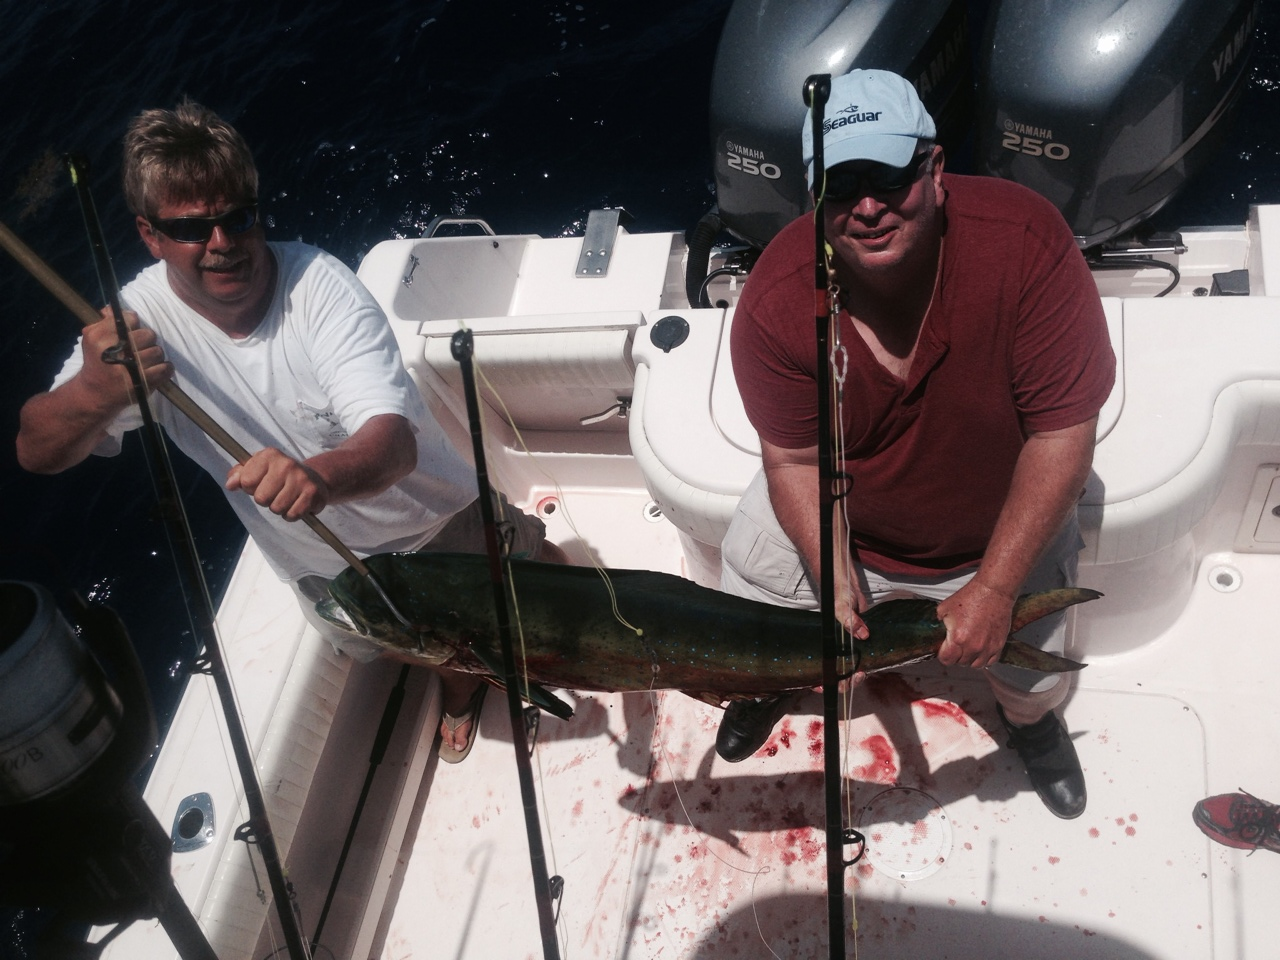 Dolphin fishing charter off Marathon in the Fl Keys.